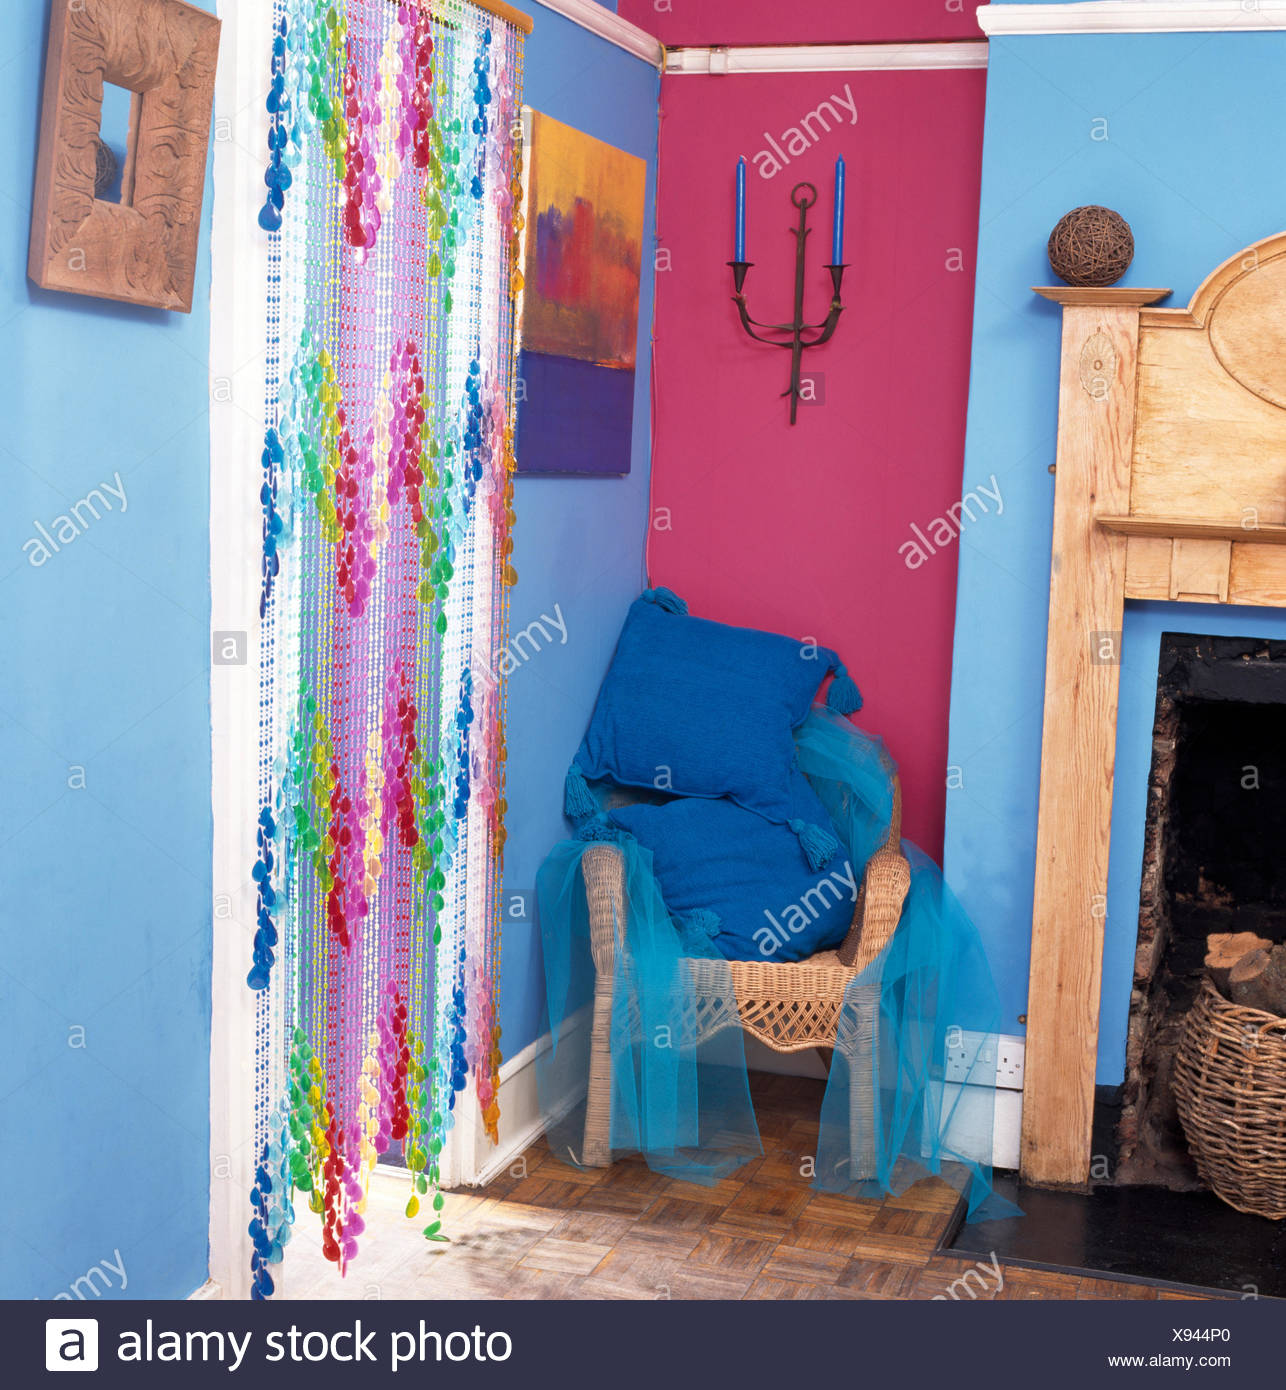 Bead curtain on door in blue economy style nineties room with blue cushions on wicker chair - Stock Image